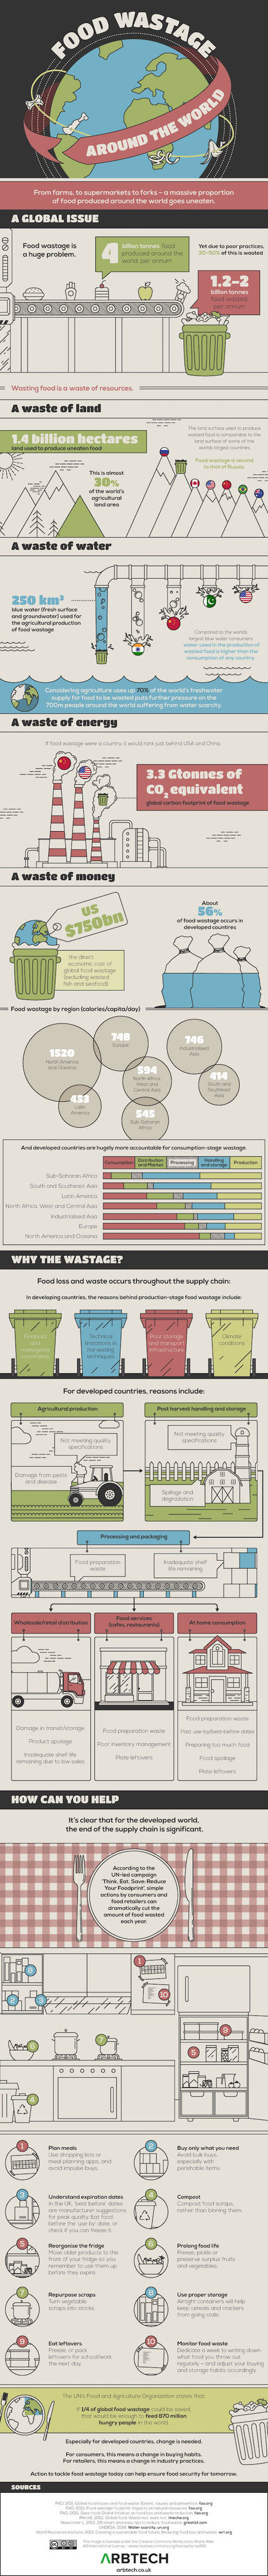 INFOGRAPHIC: How food waste has become a huge global problem | ComunicazioneSostenibile.it | Scoop.it